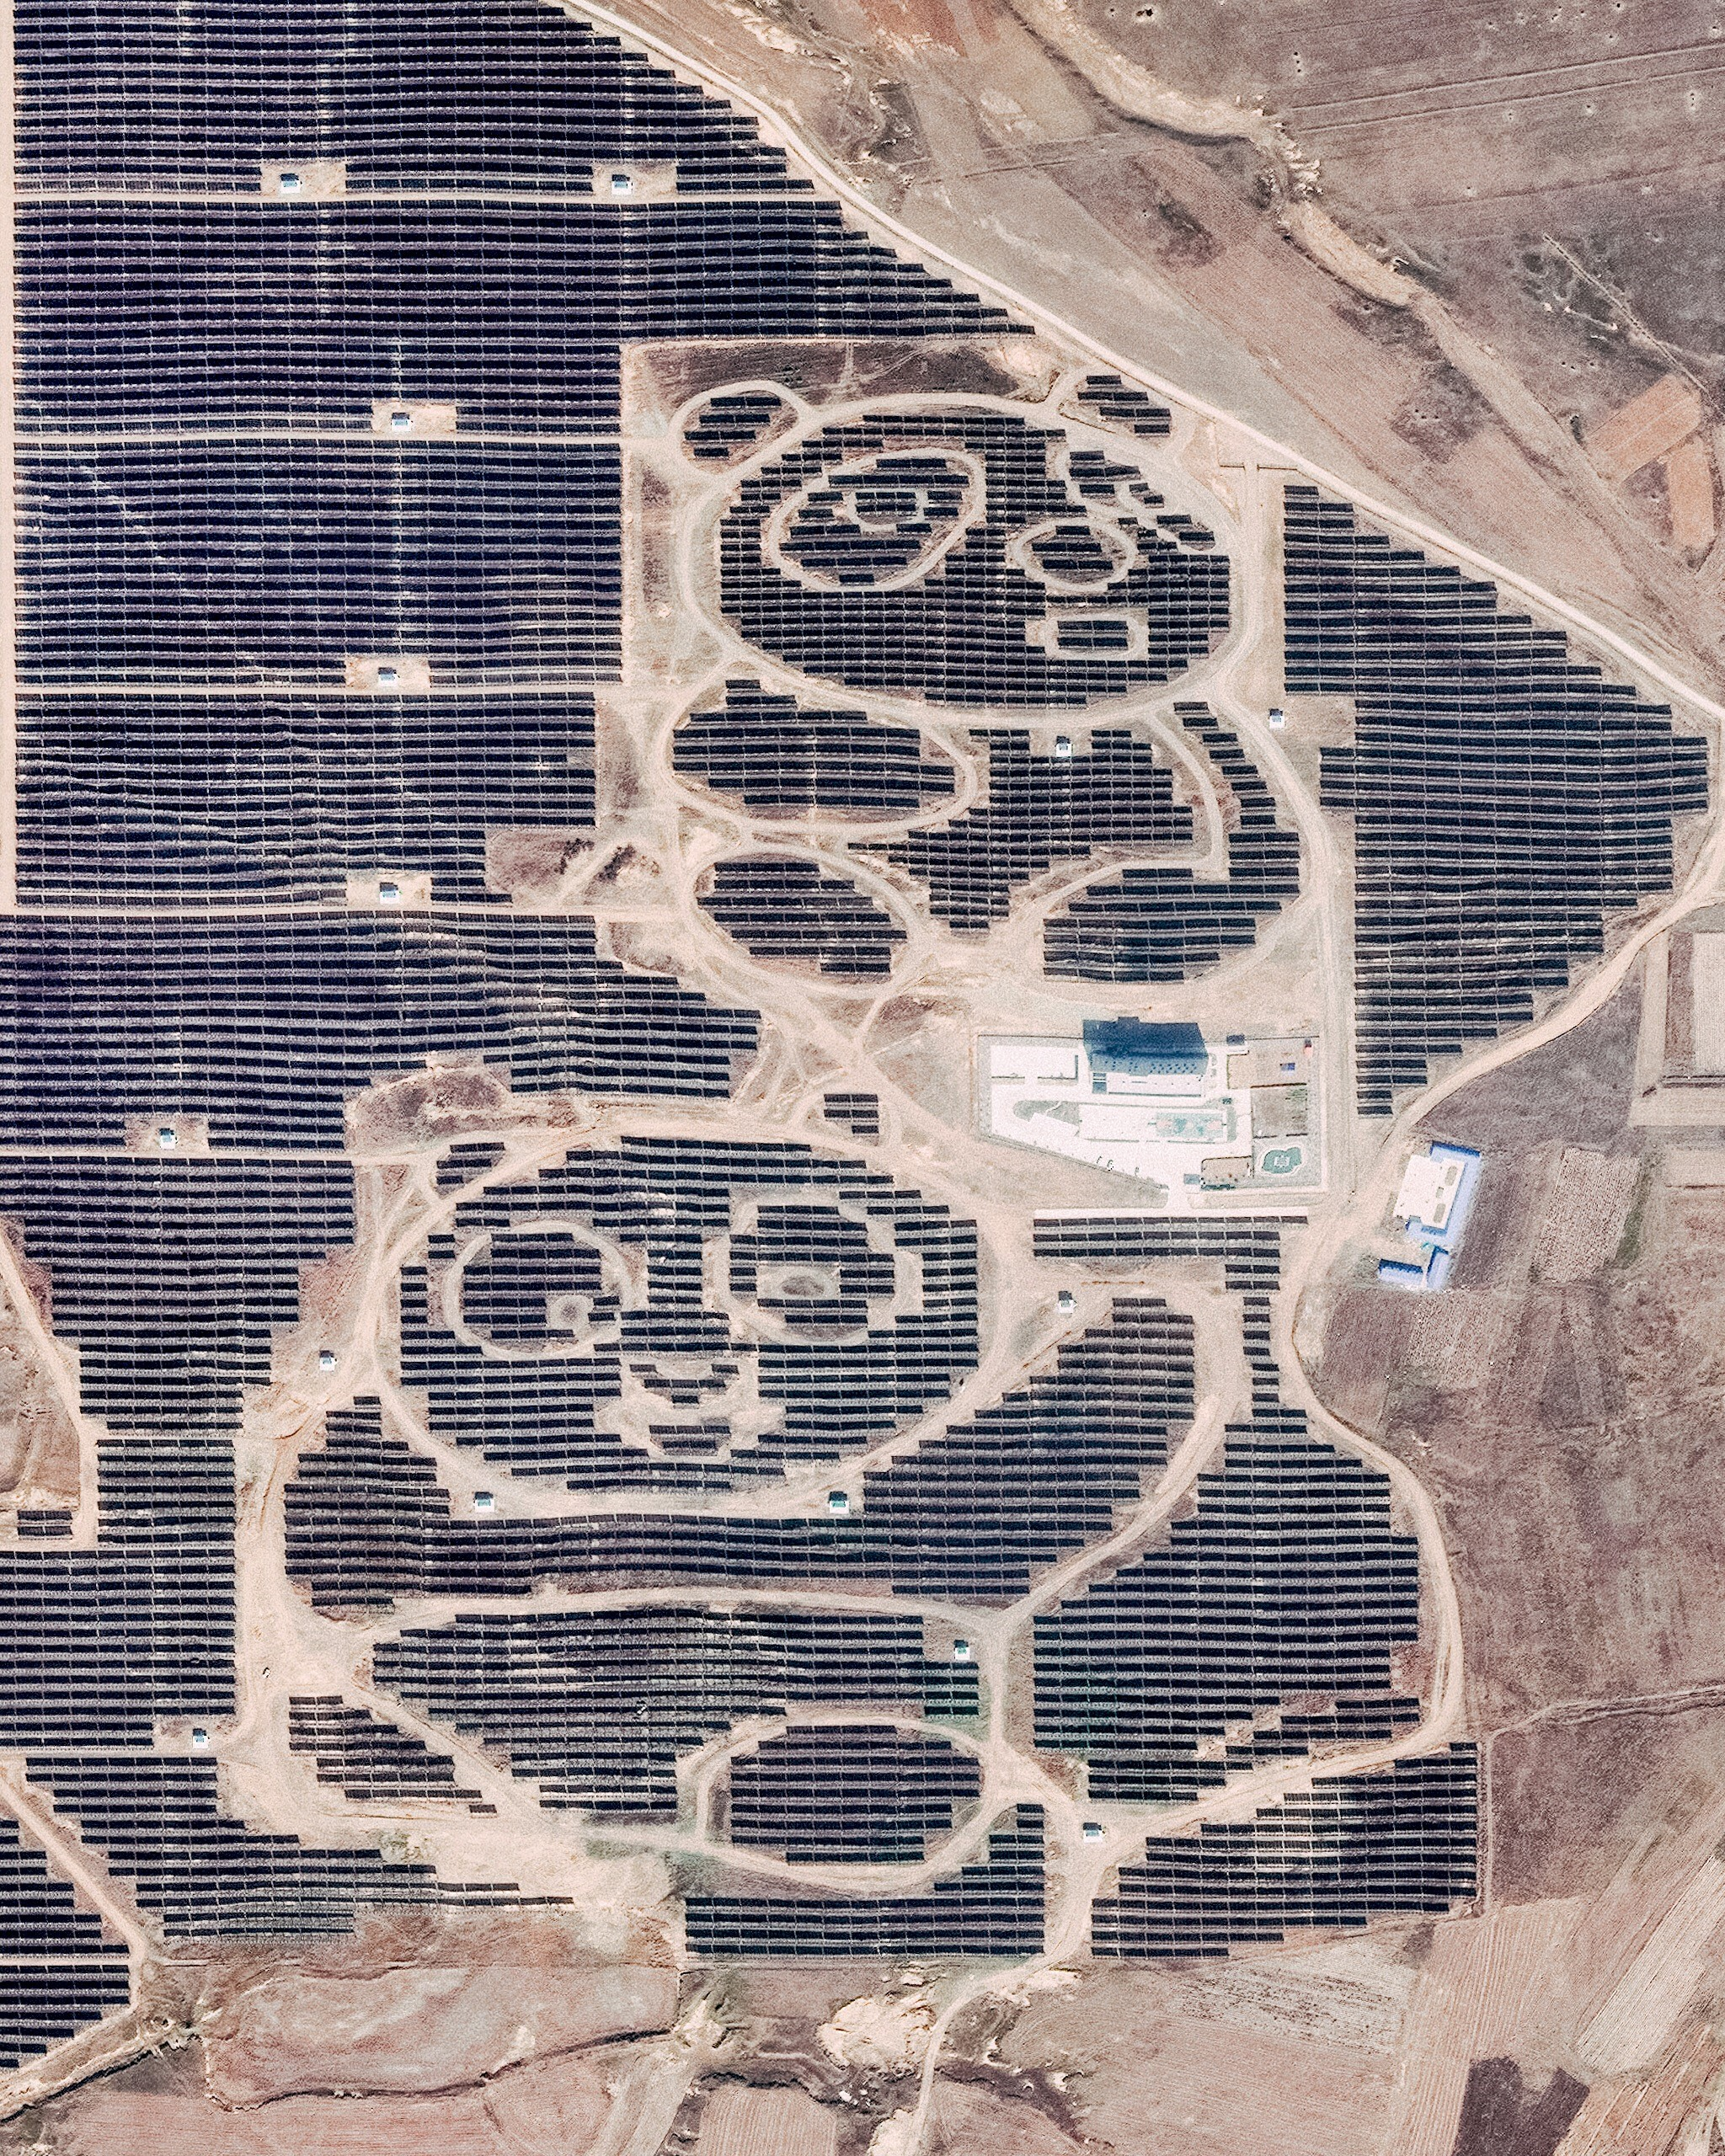 Quot Solar Pandas Quot In Datong Northern China Revue